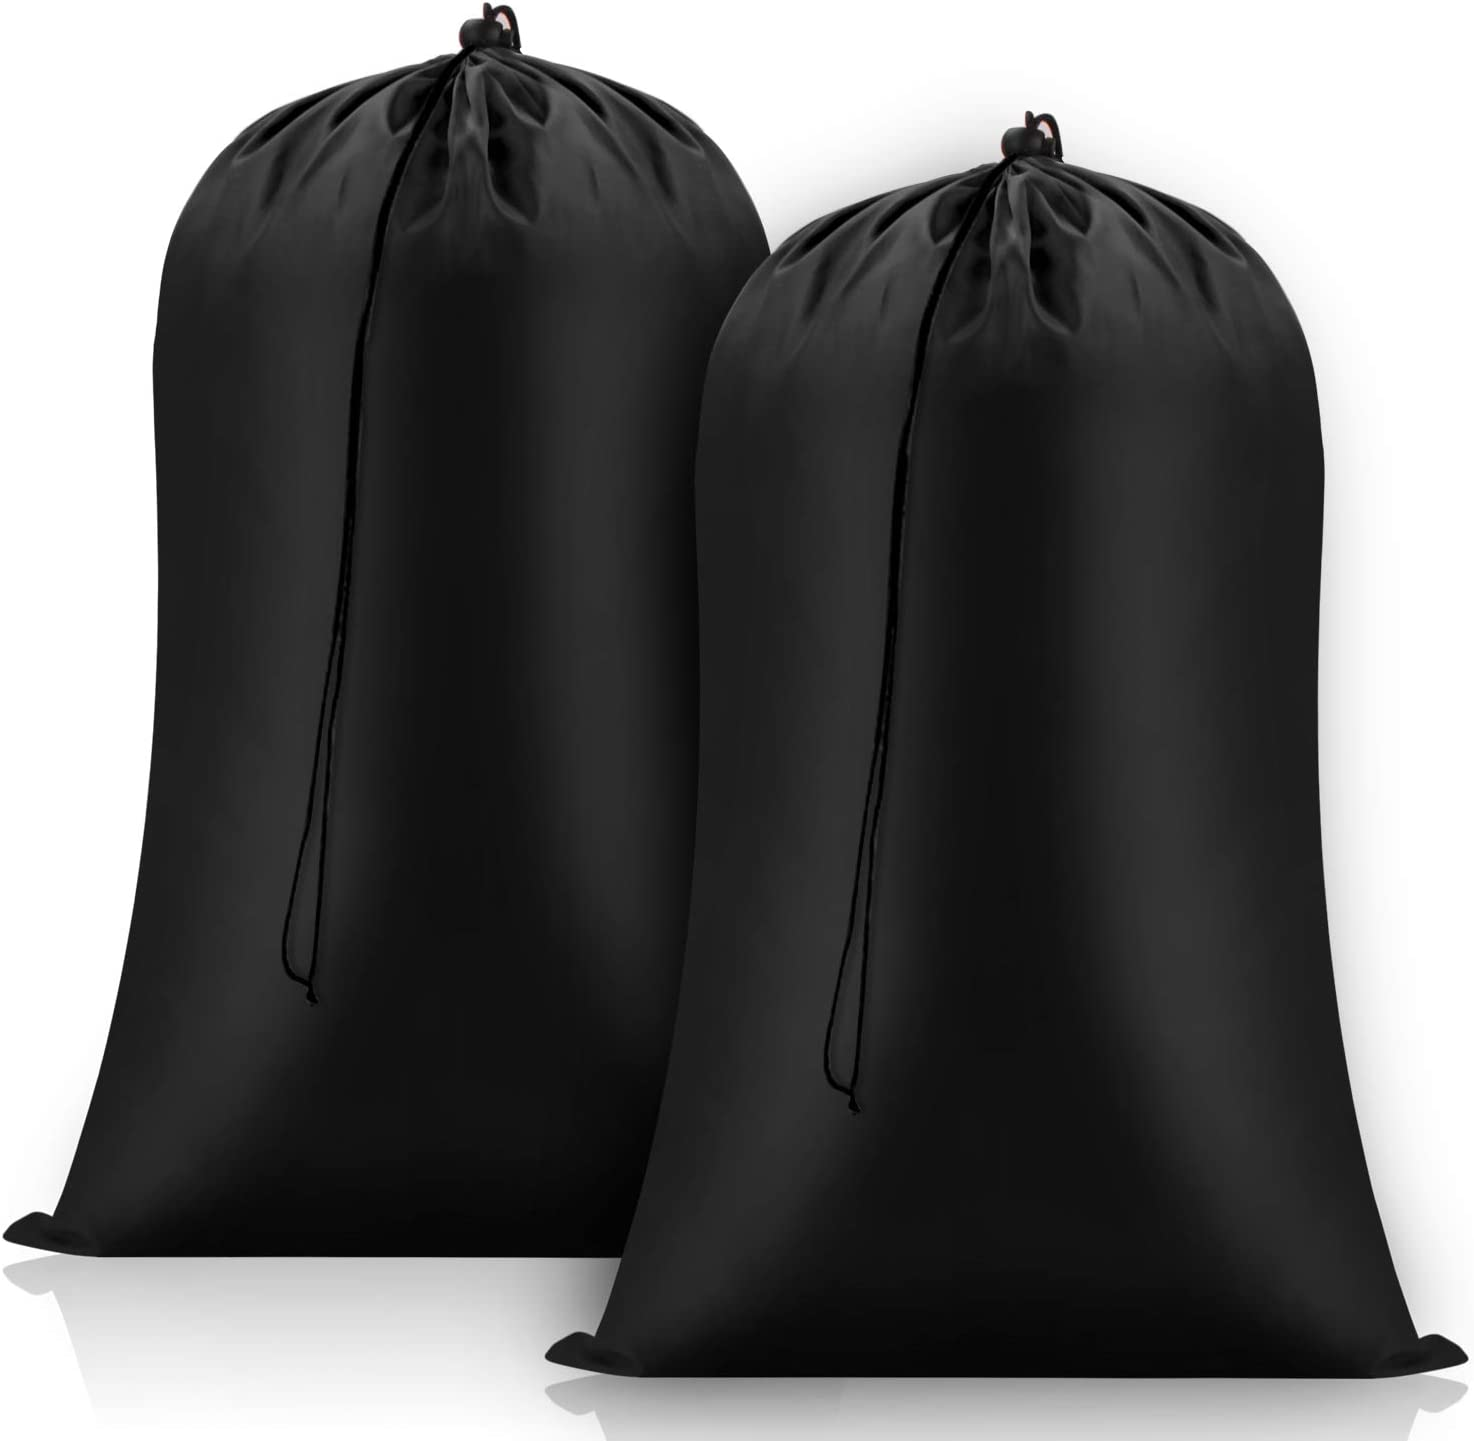 FreDorm Heavy Duty Laundry Bags Extra Large 28 x 43 inch 2 Pack XL Dirty Clothes Organizer Travel Storage Bag Drawstring Closure Camp College Dorm Tear Resistant Big Hamper Liner Black